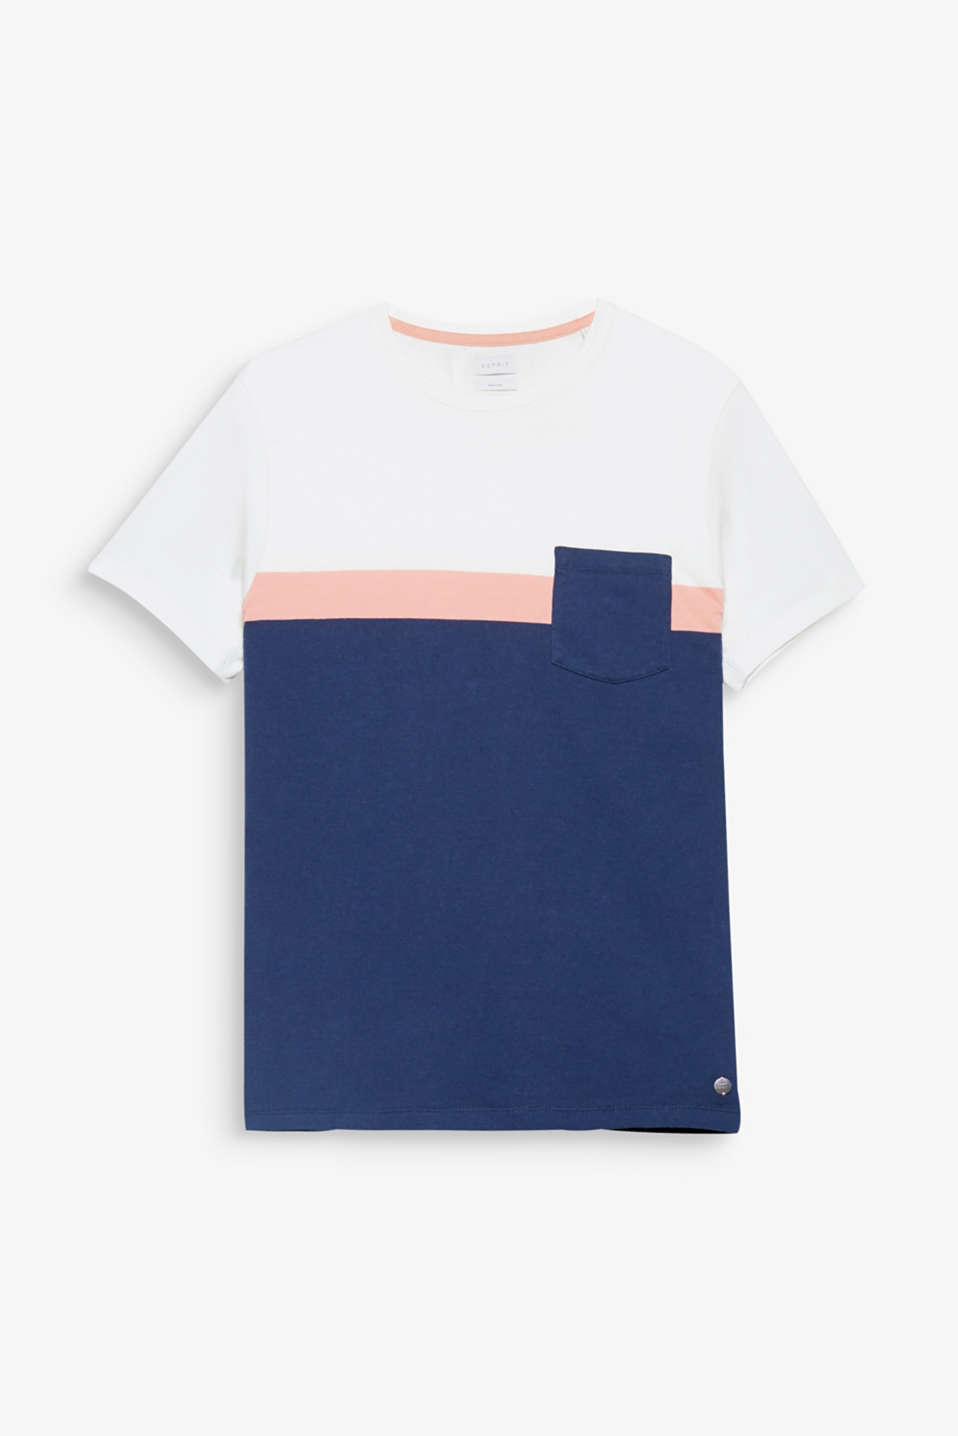 Block stripes in trendy colours make this pure cotton T-shirt a stylish favourite.